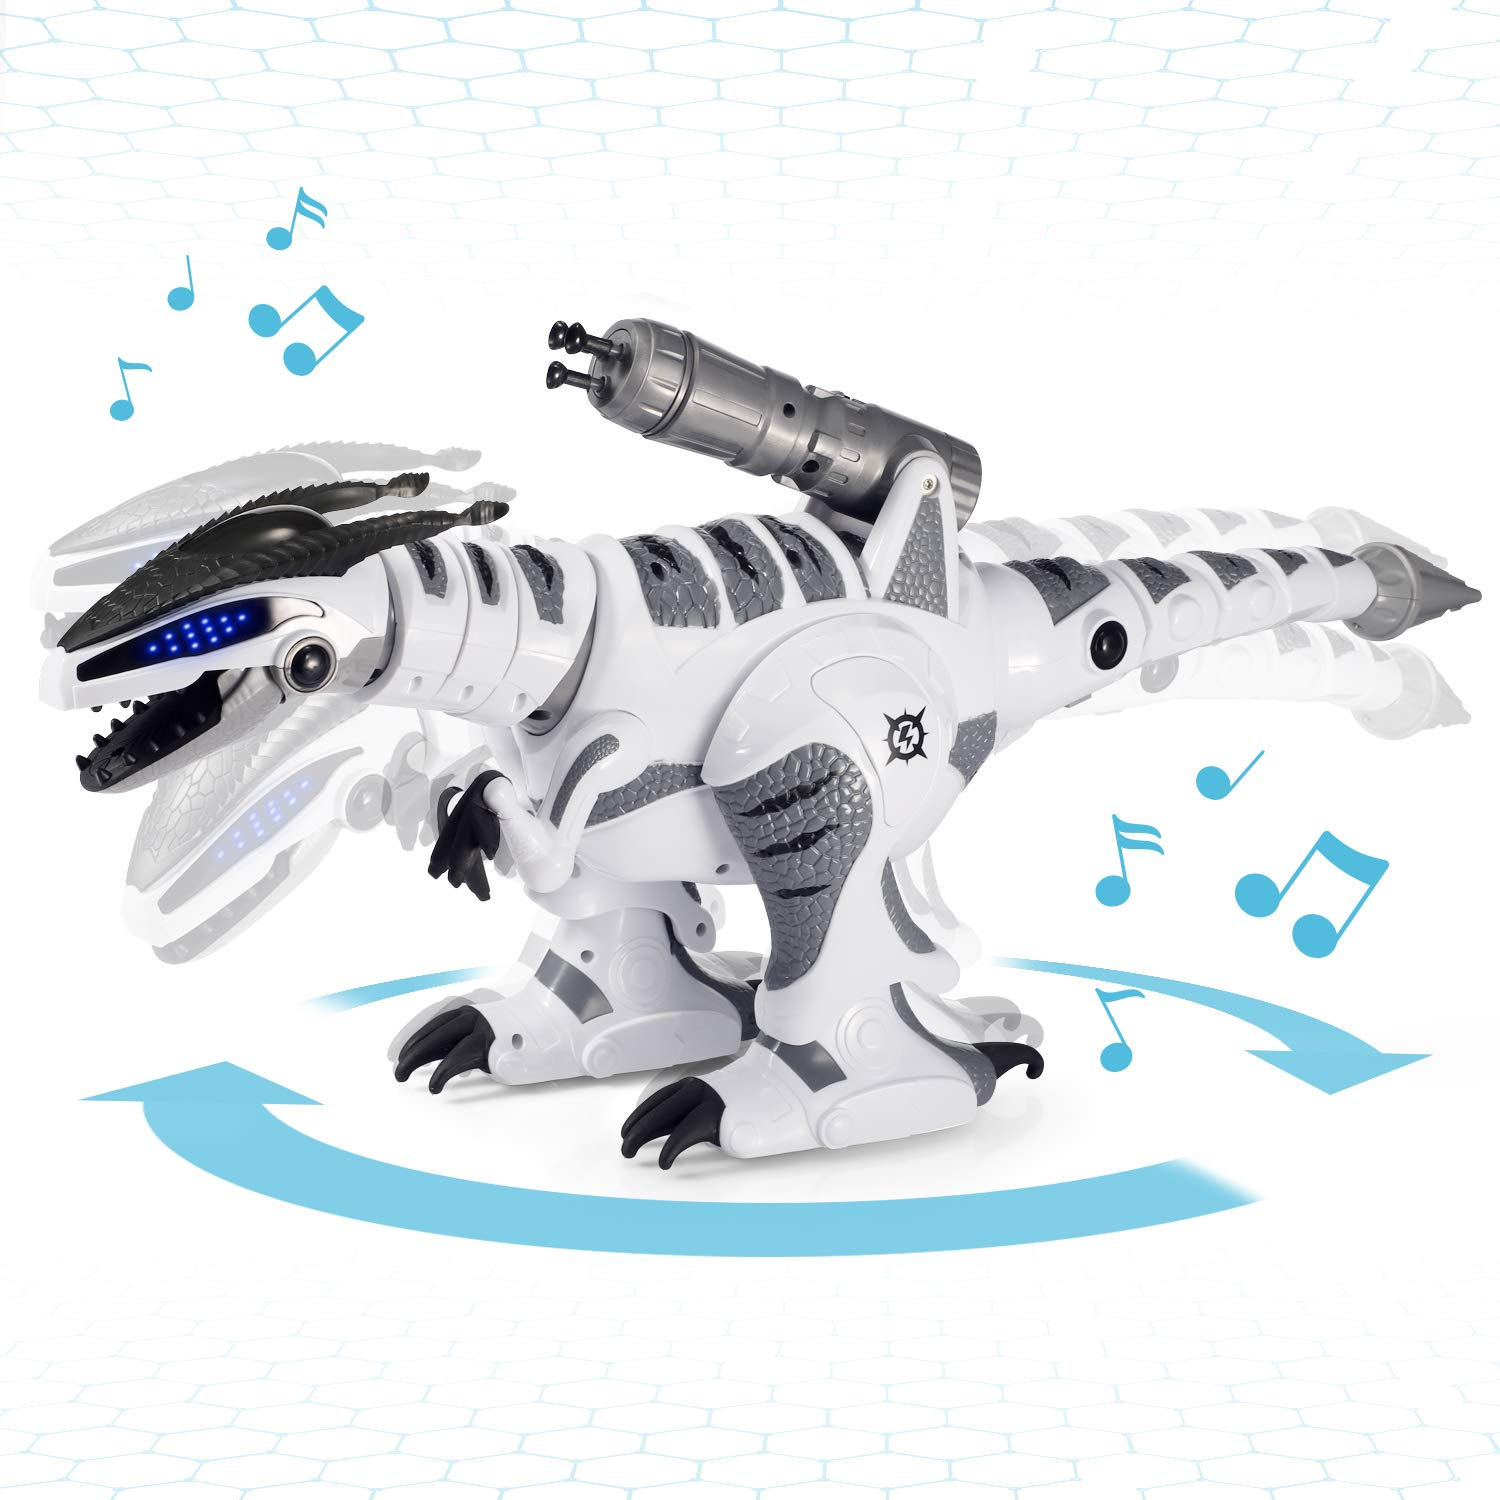 SGILE RC Dinosaur Robot Toy, Smart Programmable Interactive Walk Sing Dance for Kids Gift Present by SGILE (Image #4)